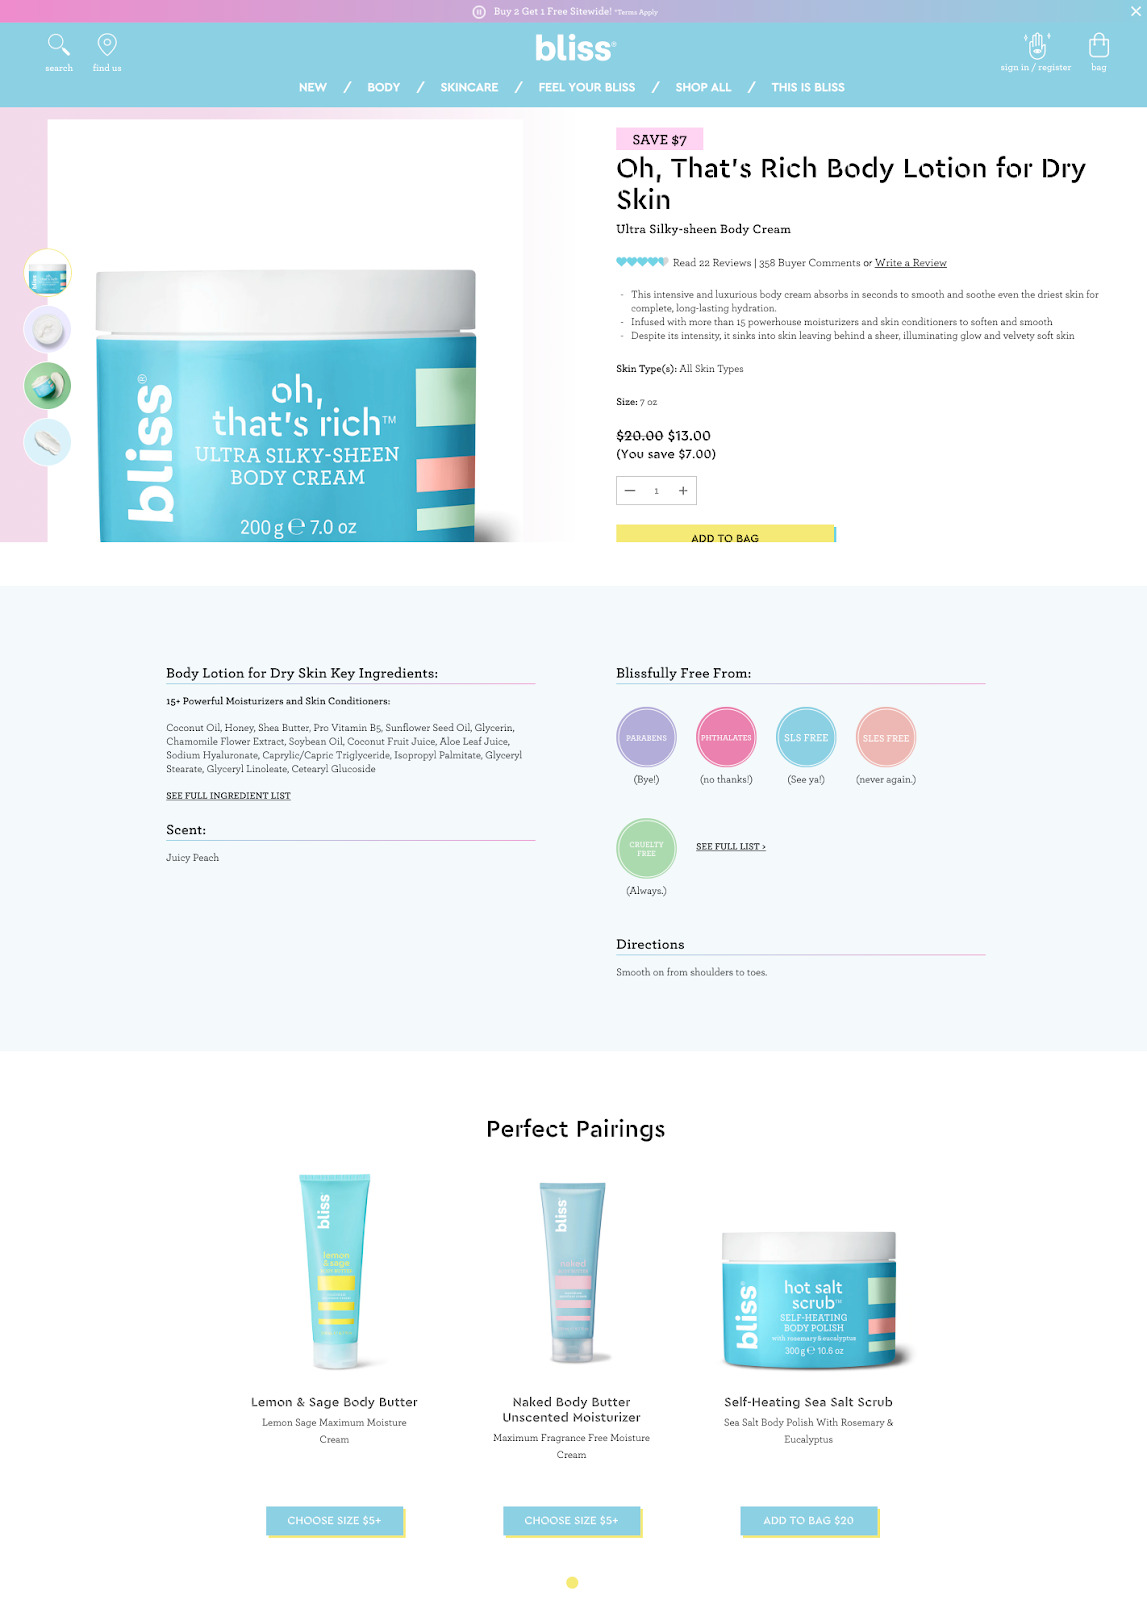 Bliss product page example